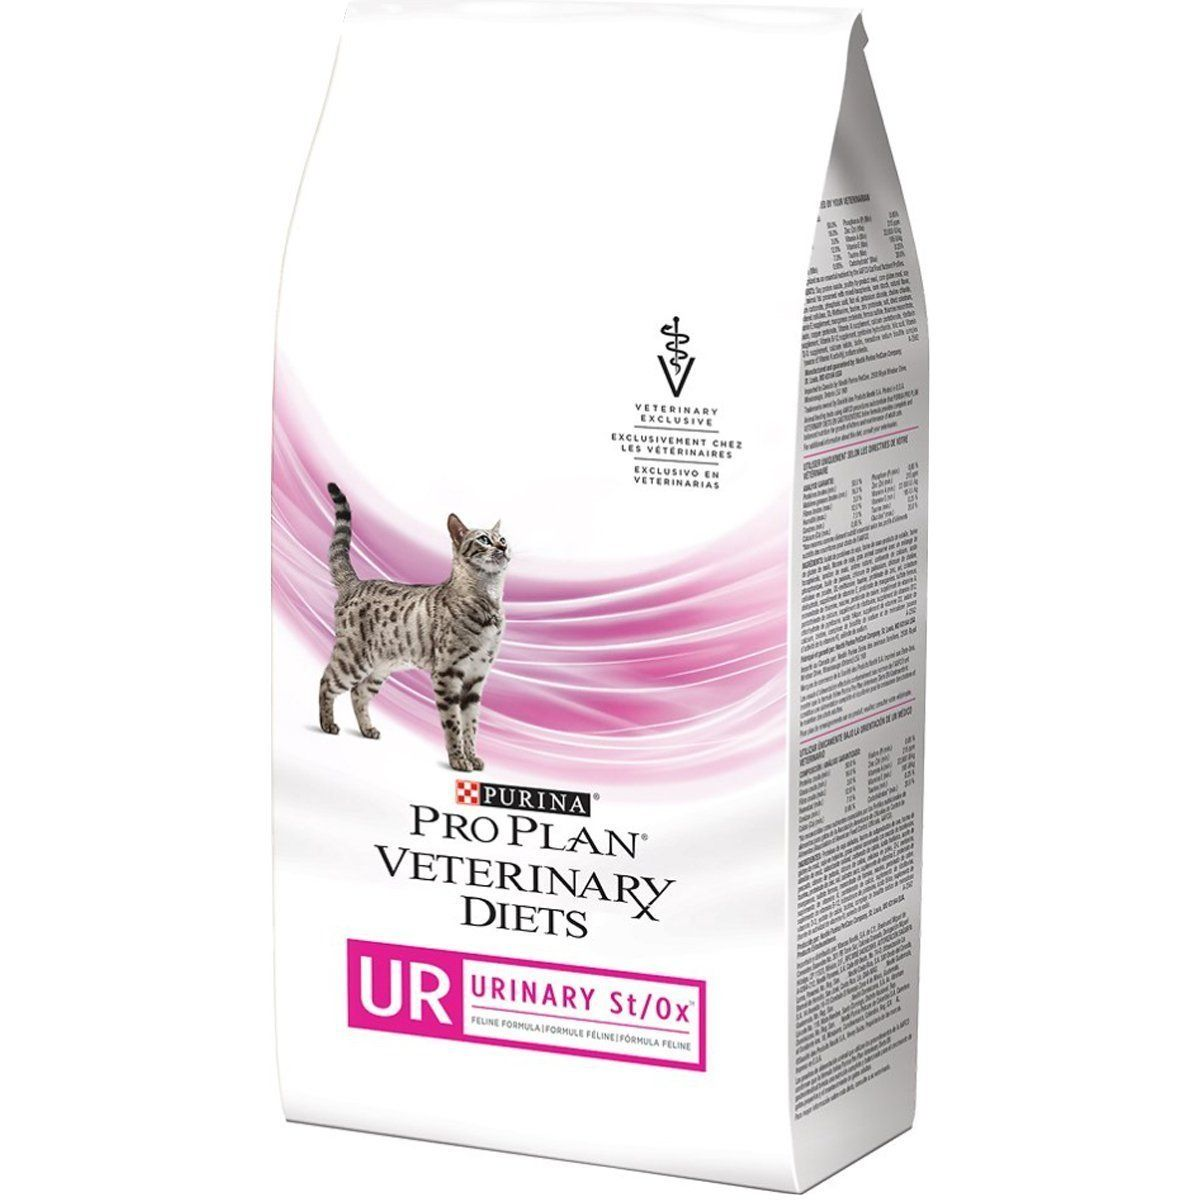 Purina Ur Urinary Tract Cat Food 16 Lb Want Additional Info Click On The Image This Is An Affiliate Lin Best Cat Food Cat Nutrition Urinary Tract Cat Food